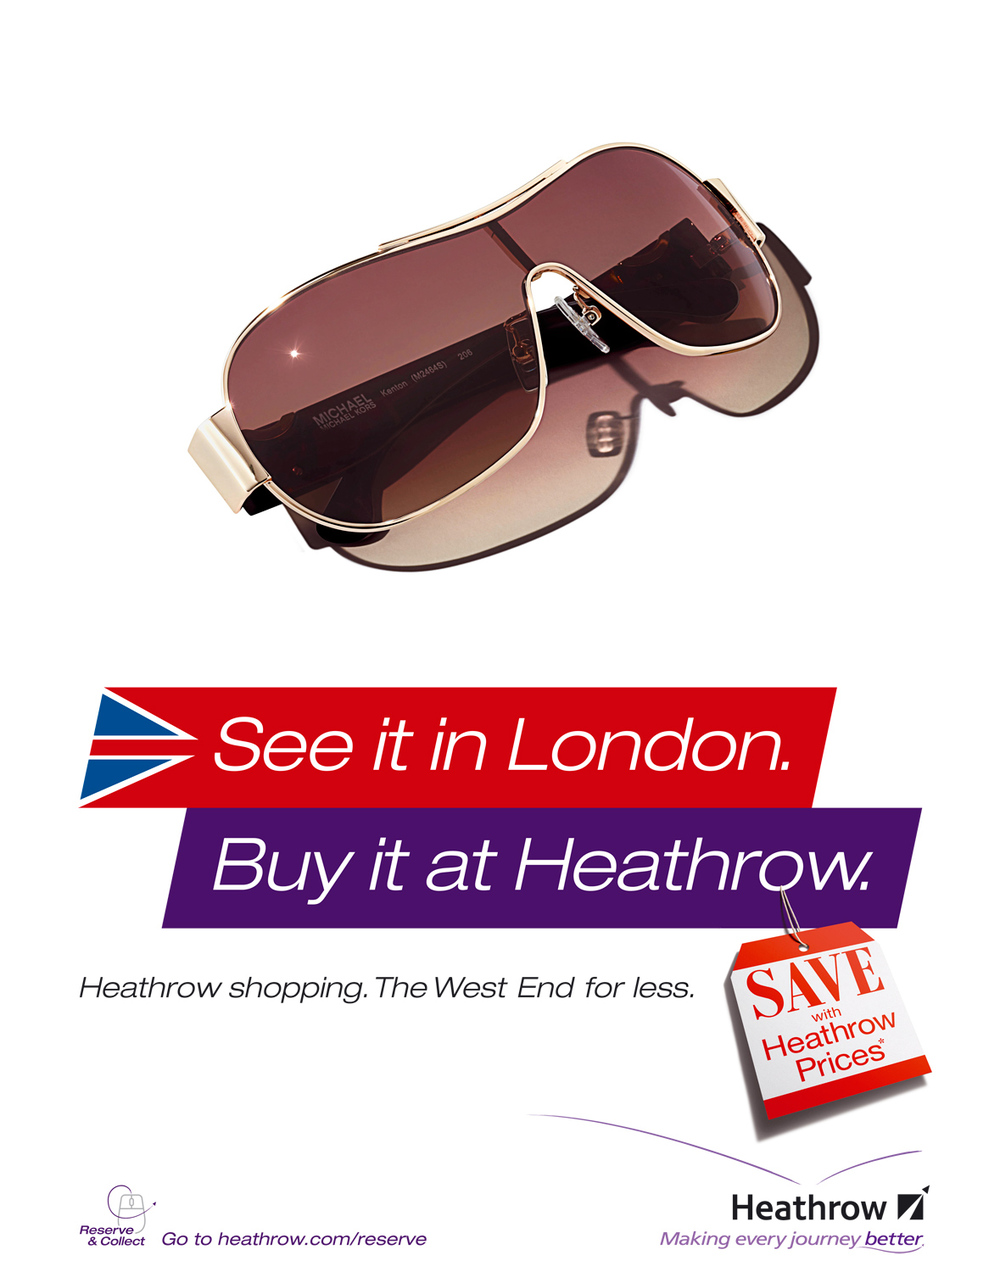 Heathrow-Summer-Campaign-Sunglasses.jpg